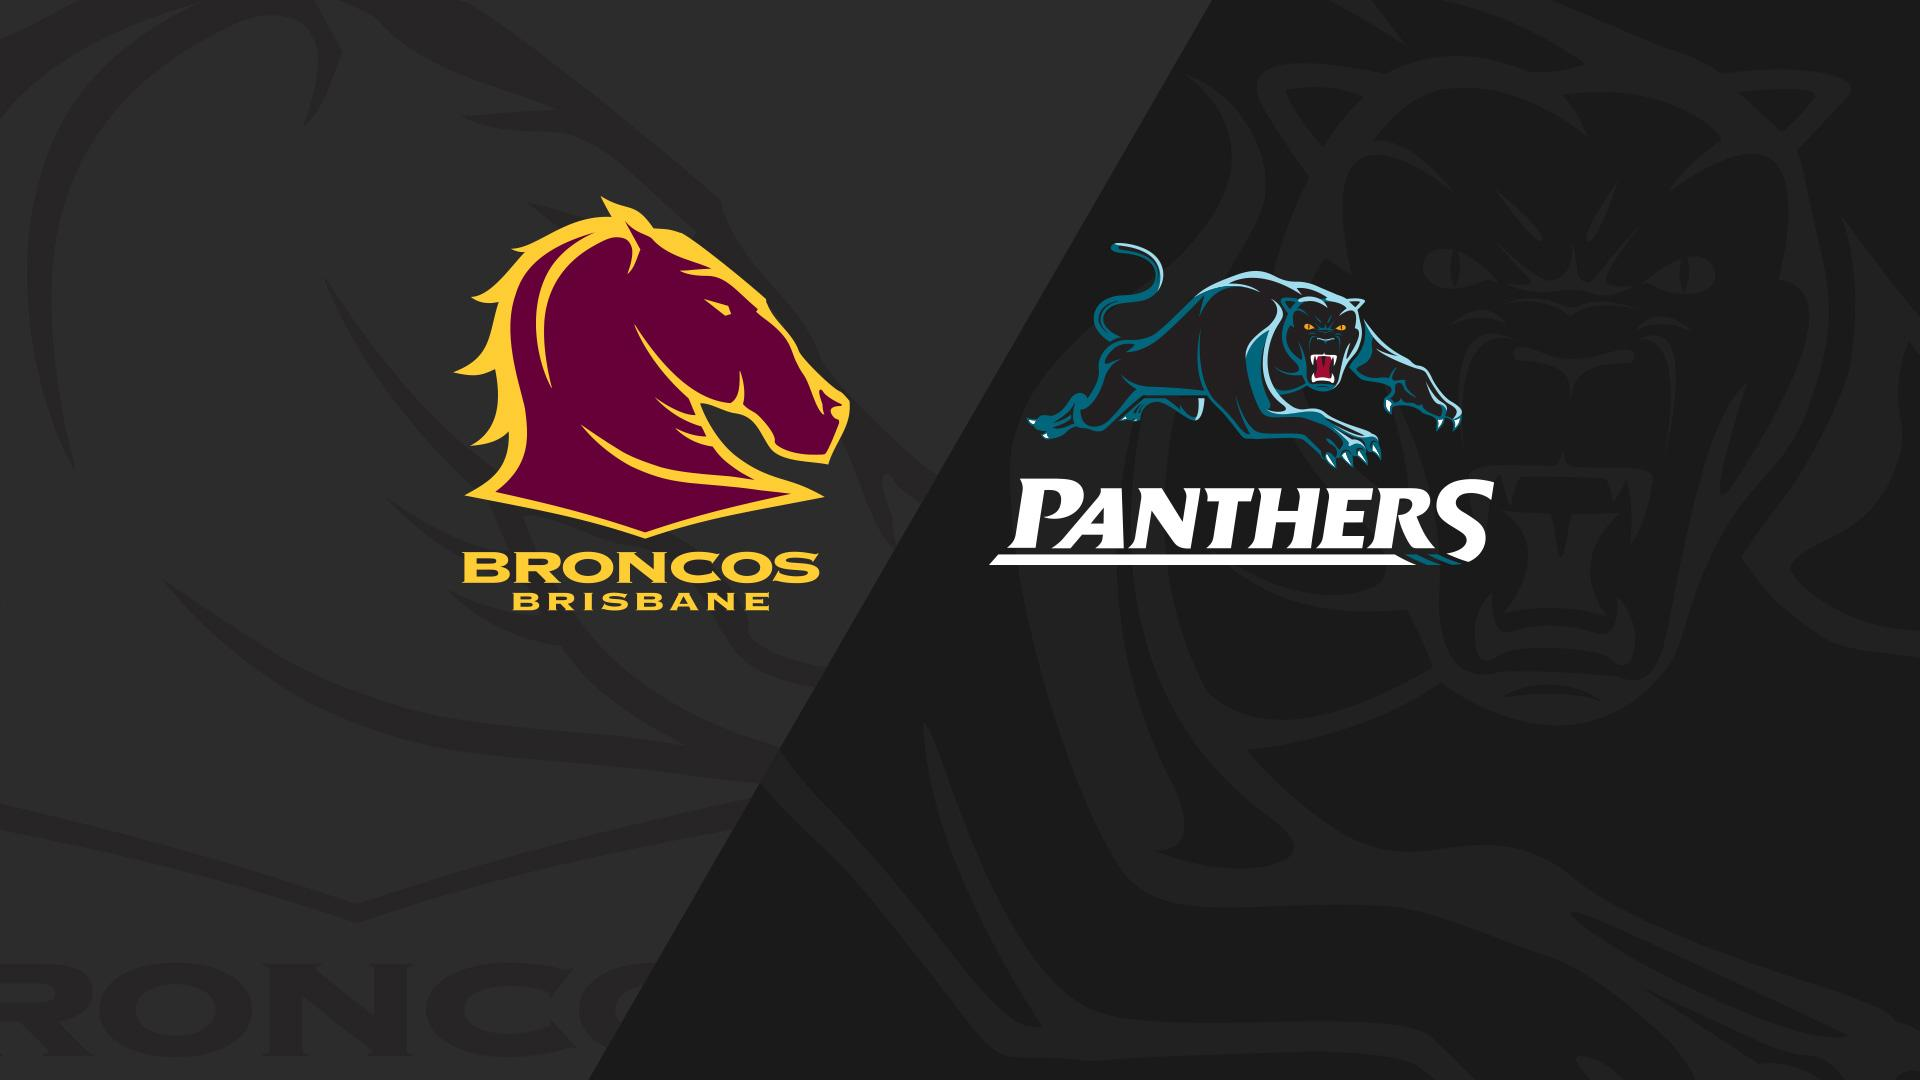 Full Match Replay: Broncos v Panthers - Round 19, 2018